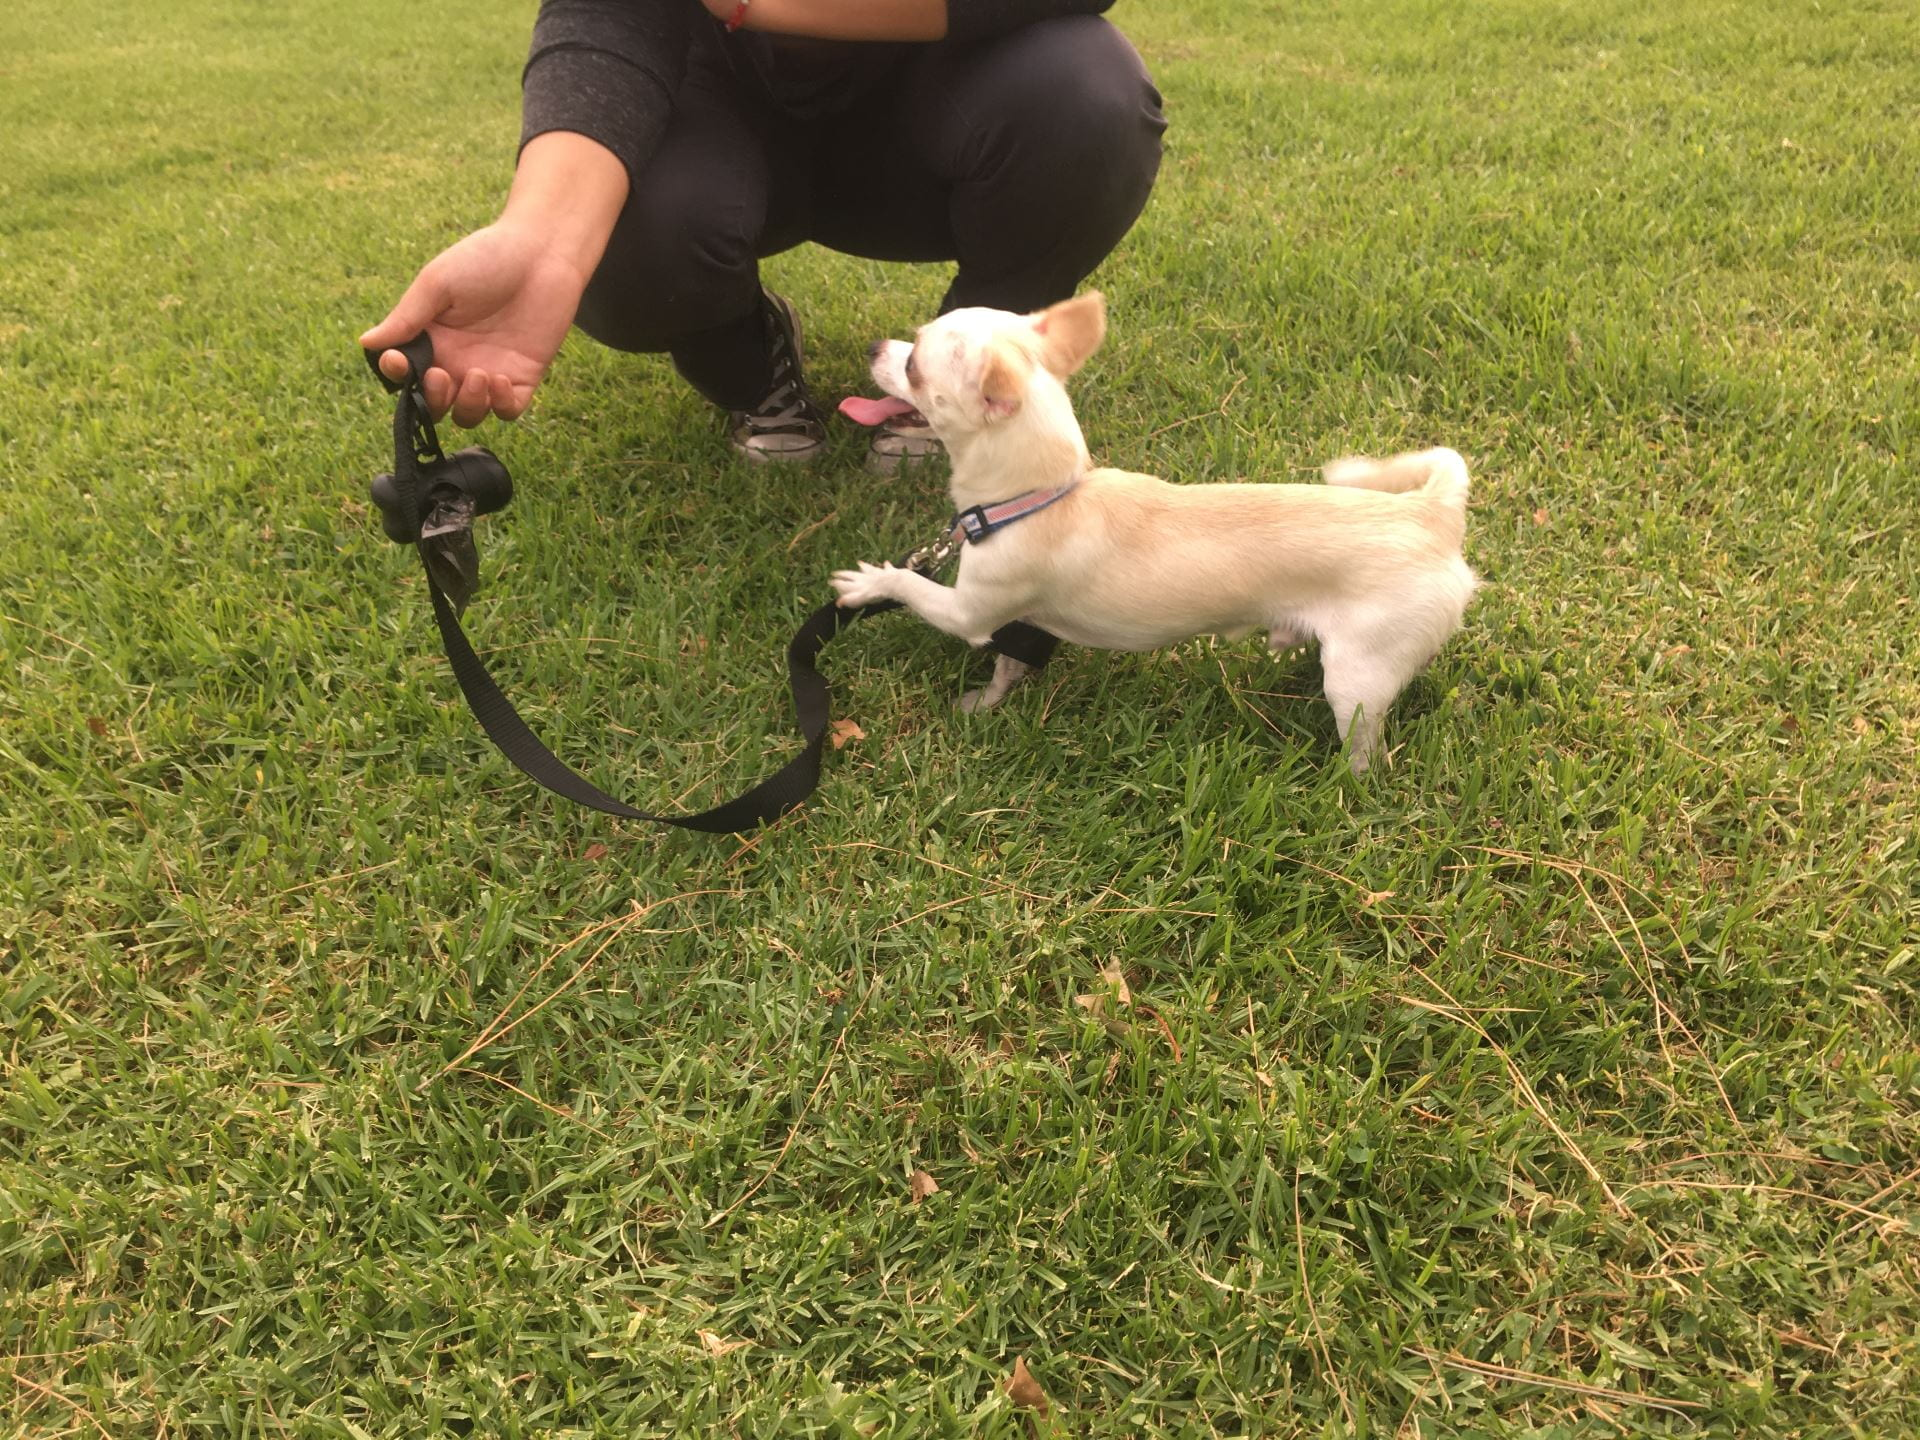 He loves to play with his leash